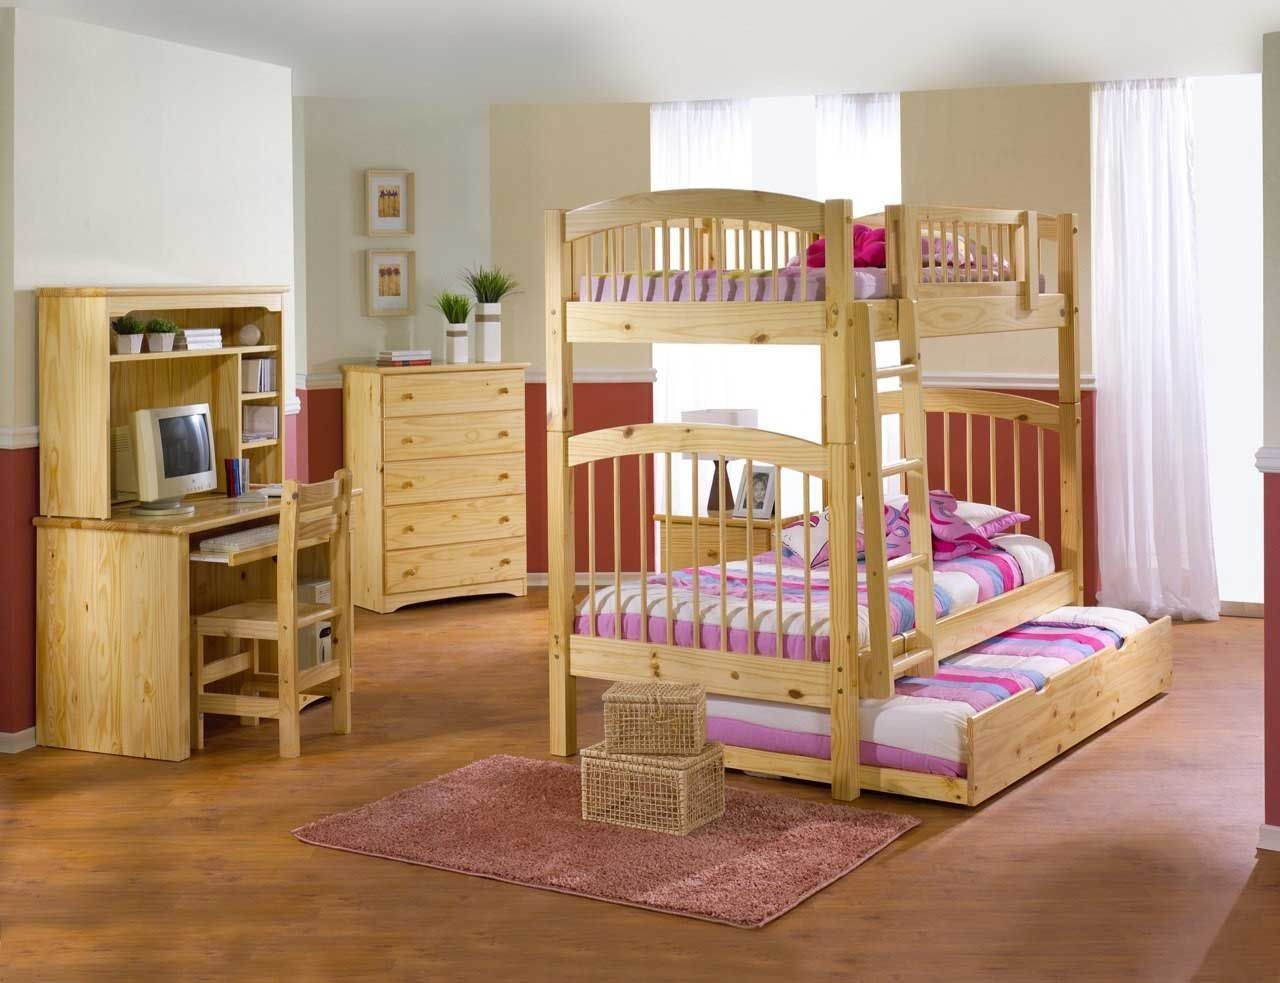 Cool Kids Bunk Bed Ideas For Boys And Girls Room Natural Wood